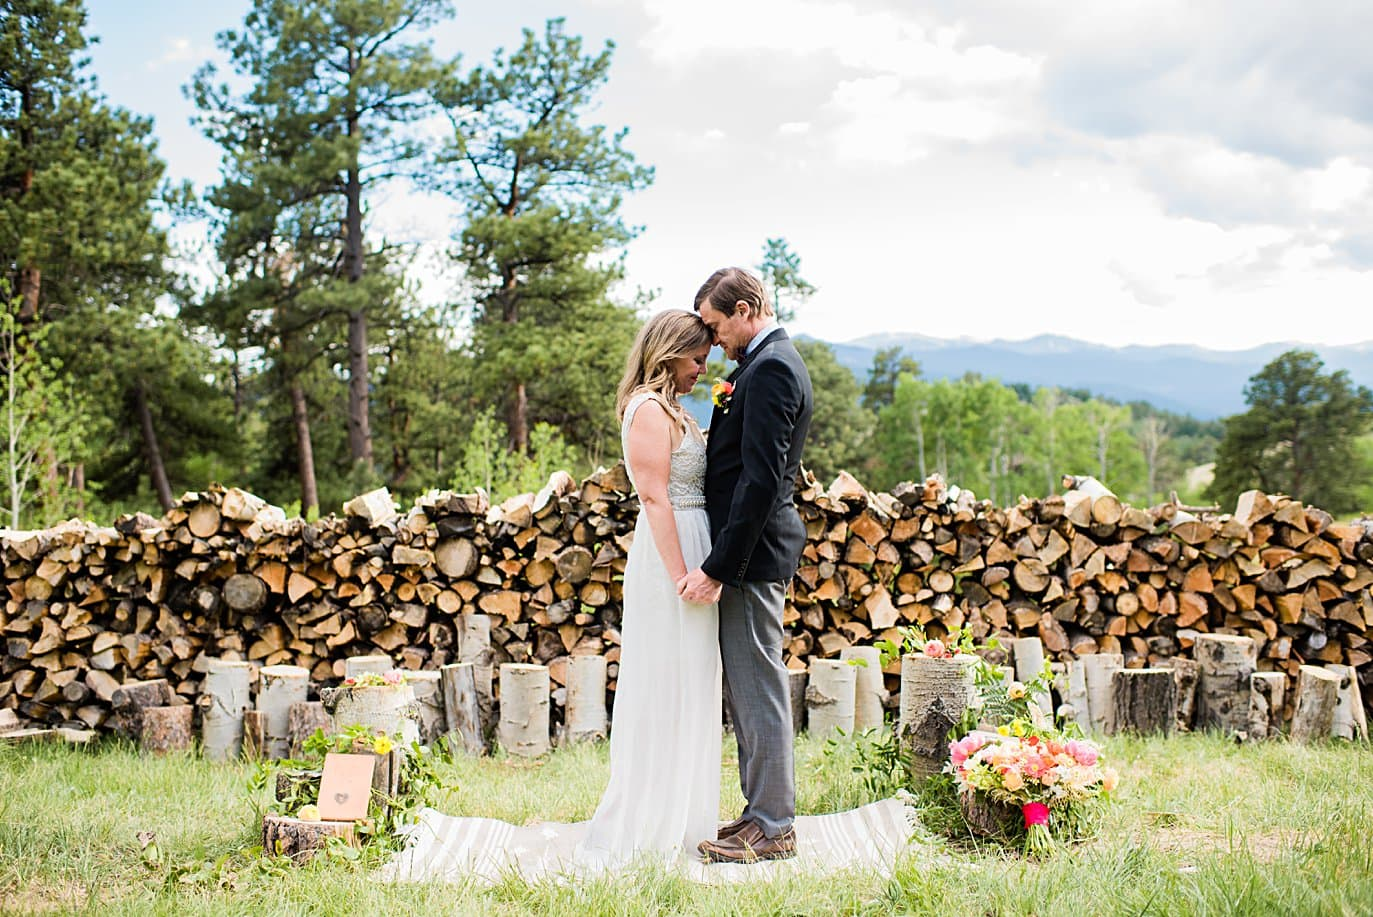 bride and groom share emotional moment after ceremony at private property Golden elopement by Golden wedding photographer Jennie Crate